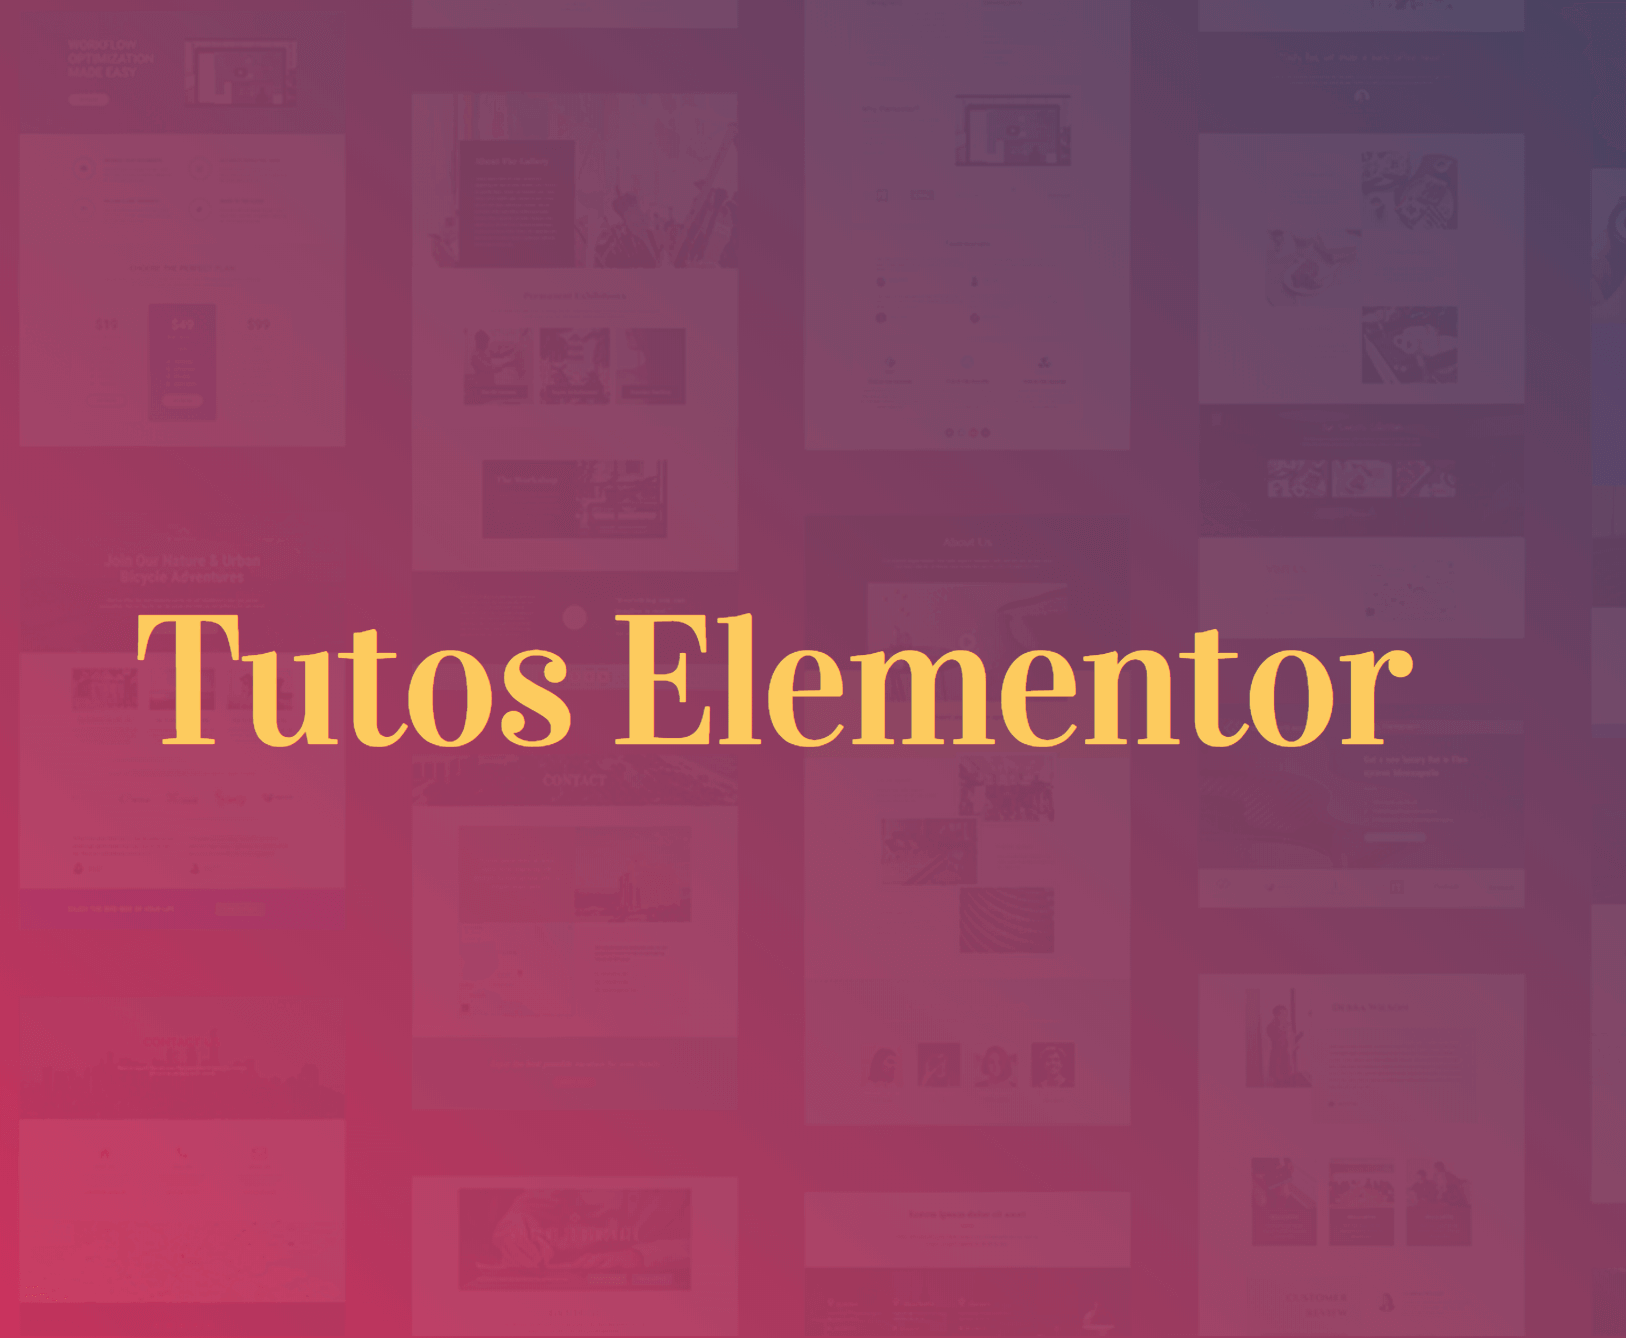 tutos-elementor